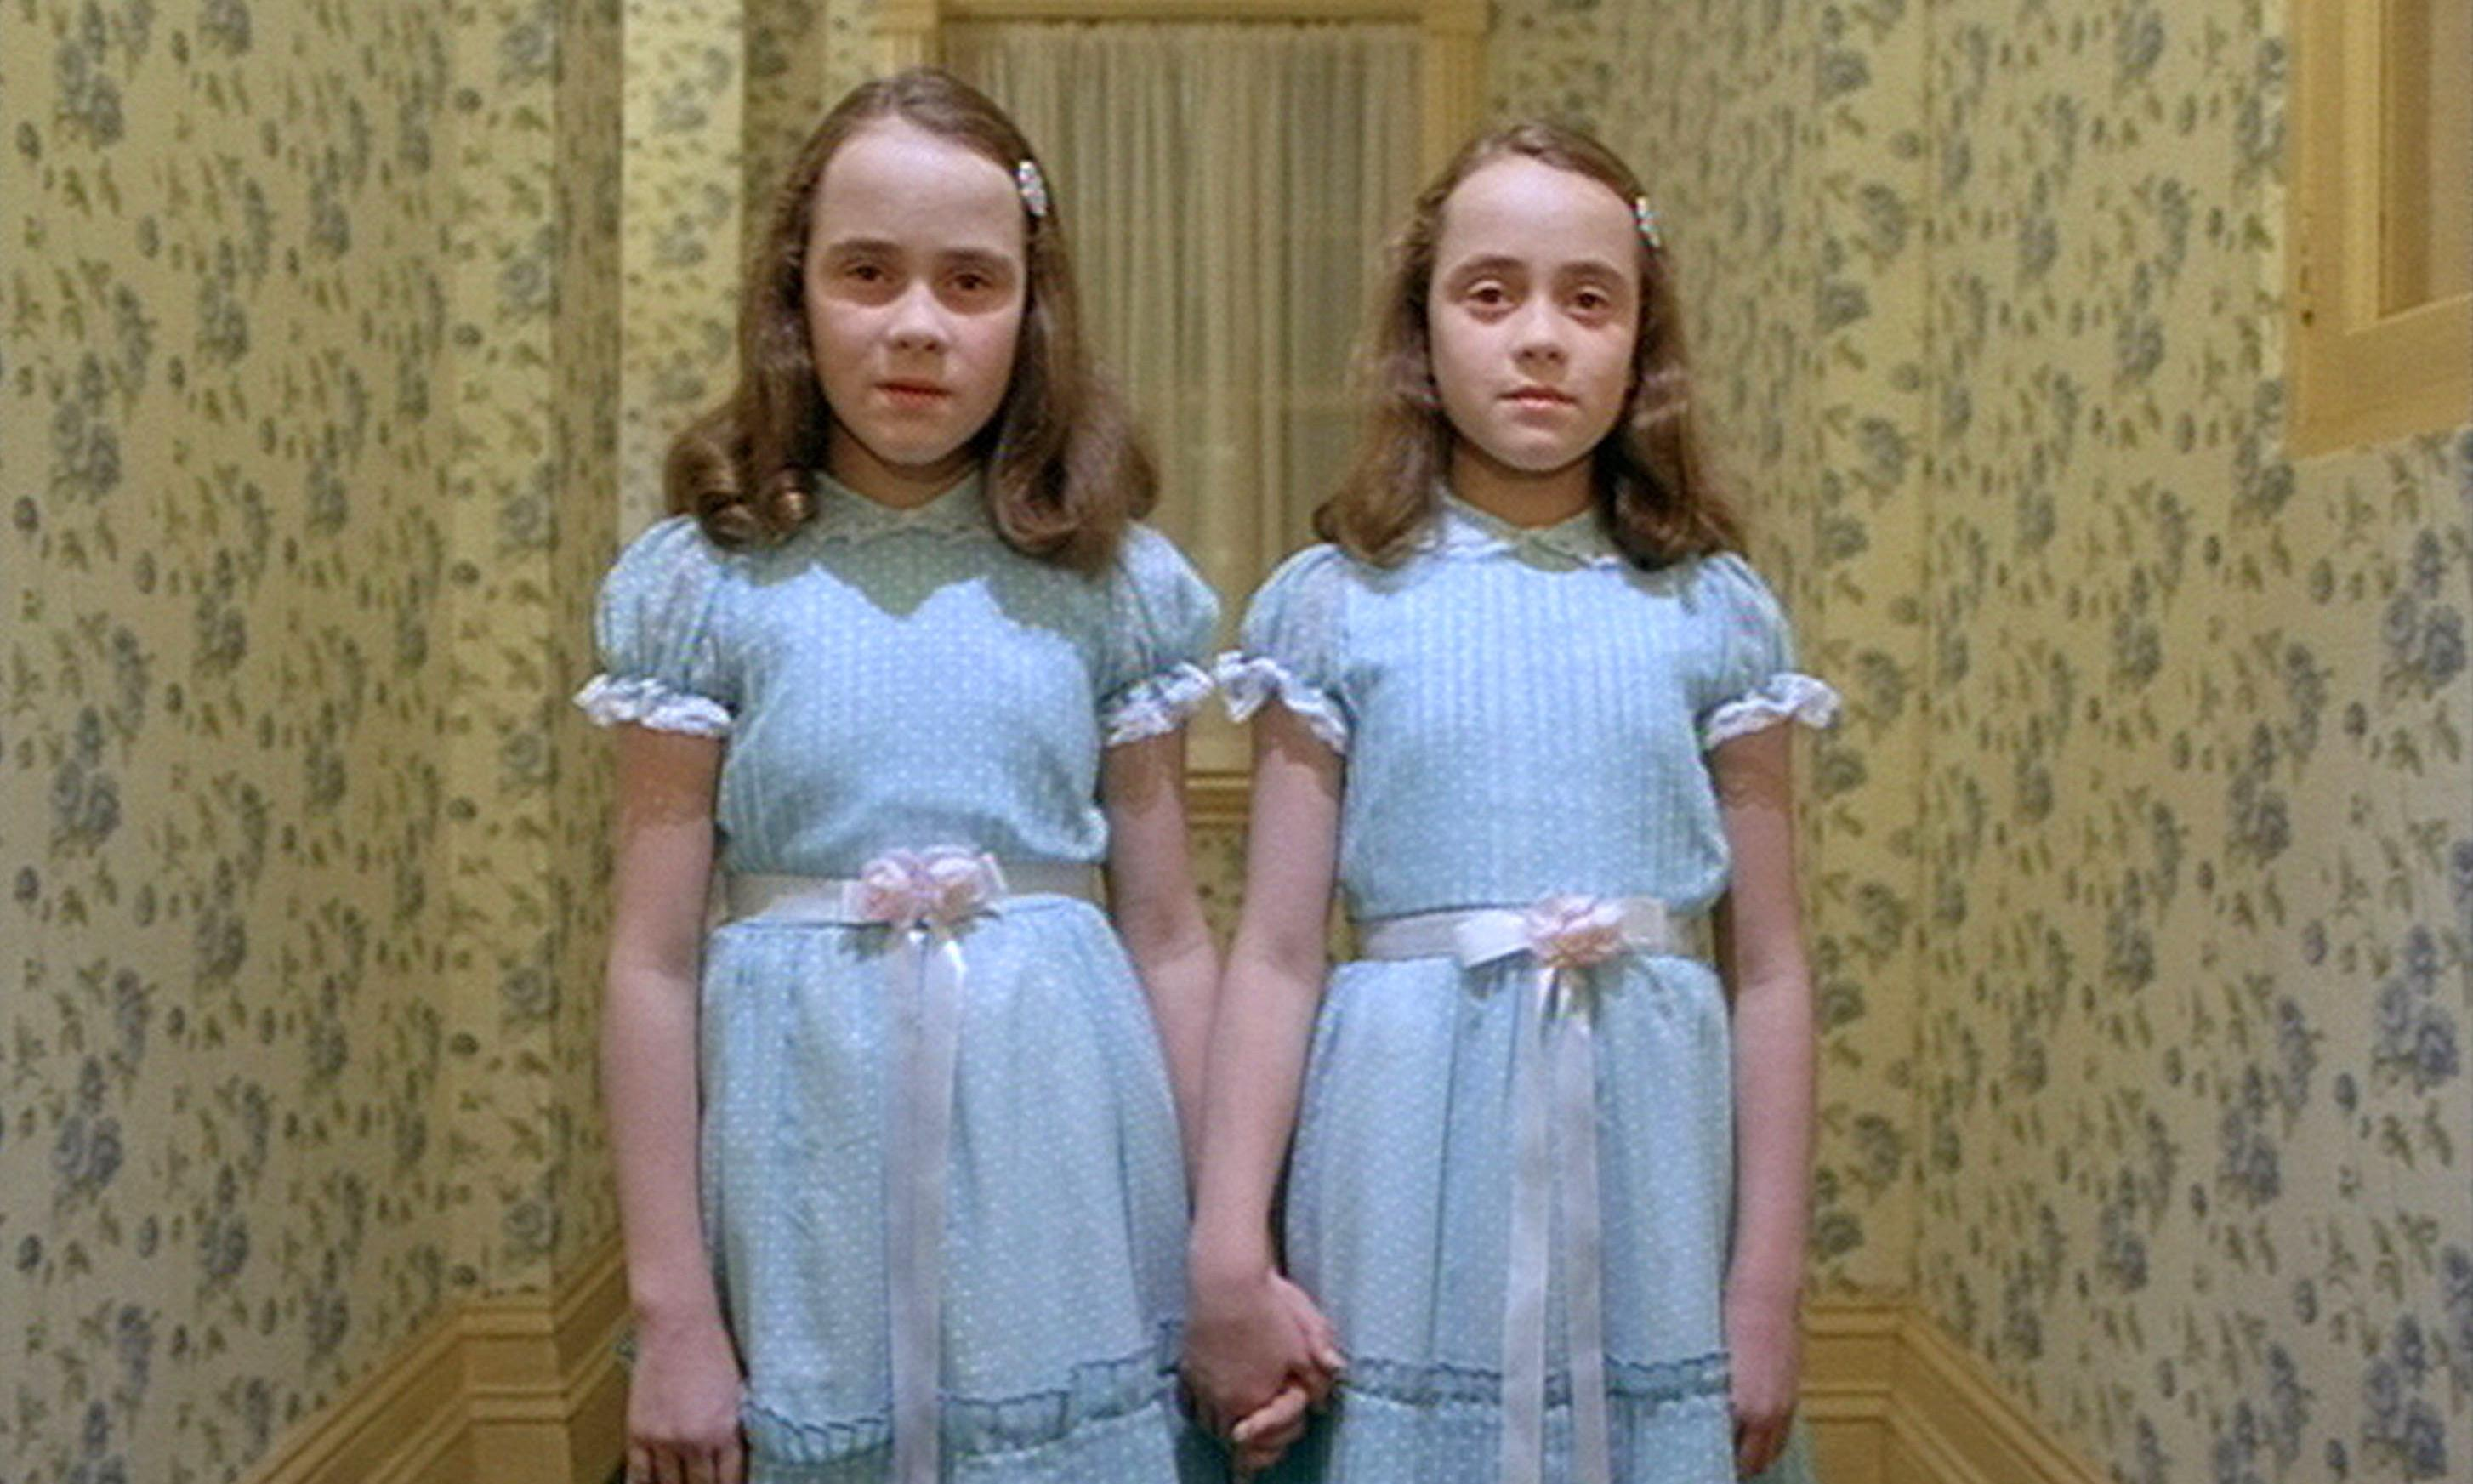 Twins get a bad rap in everything from The Shining to Mr Men. Here's the truth